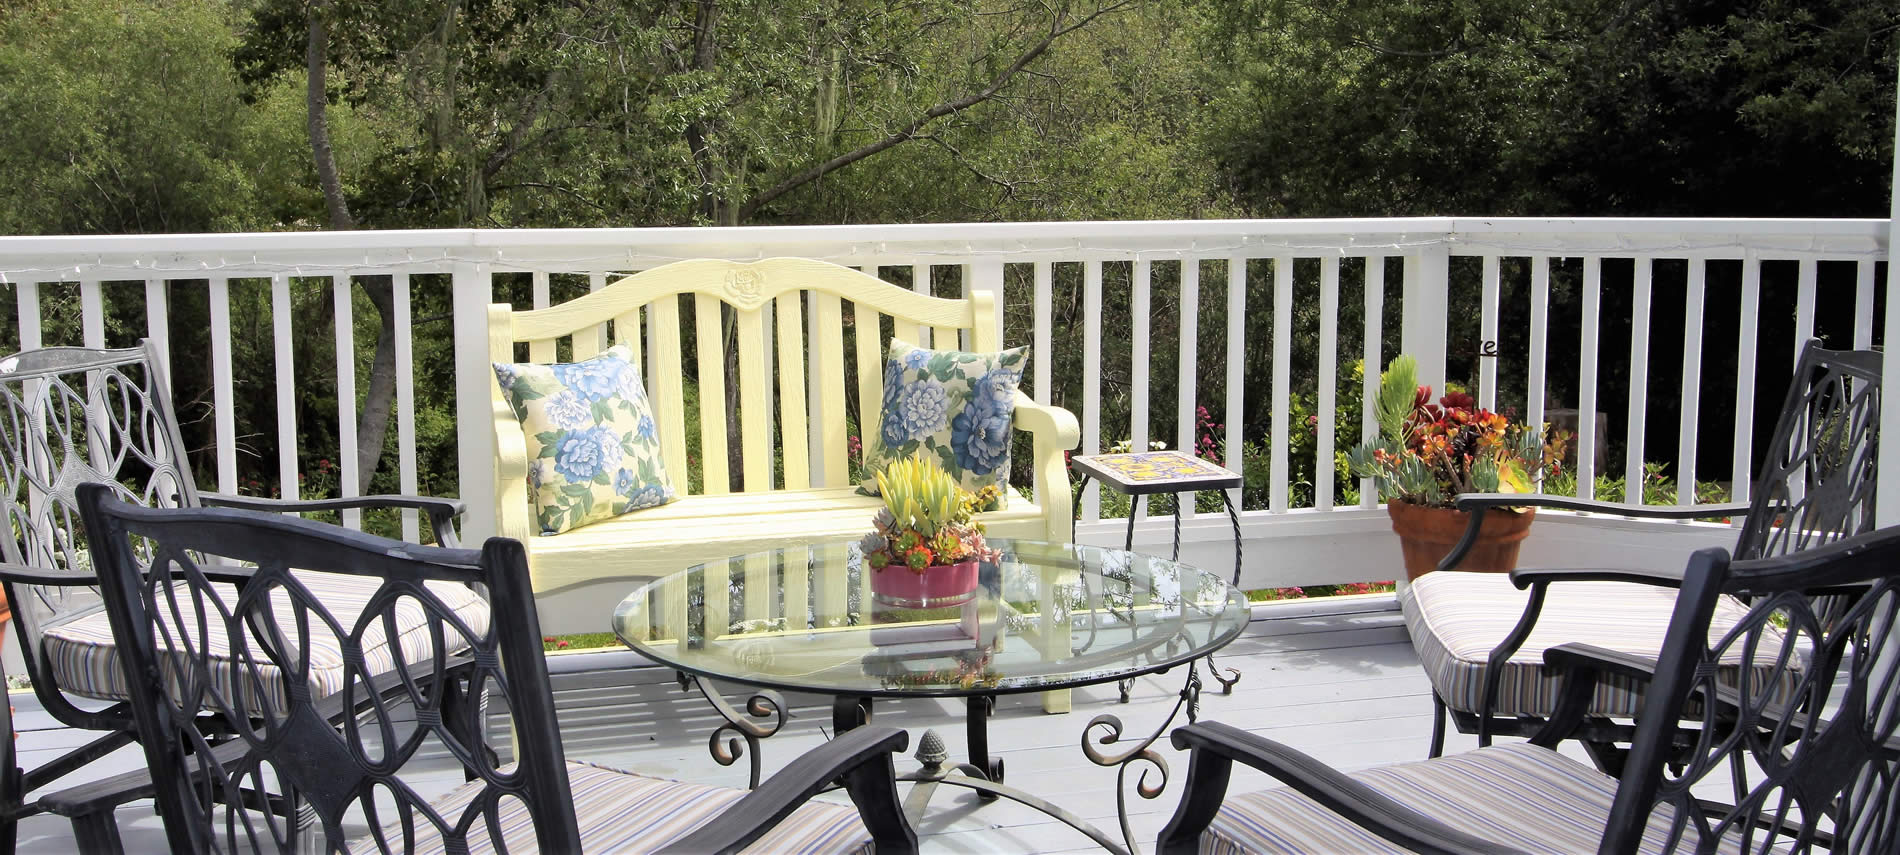 cambria lodging back deck at olallieberry inn